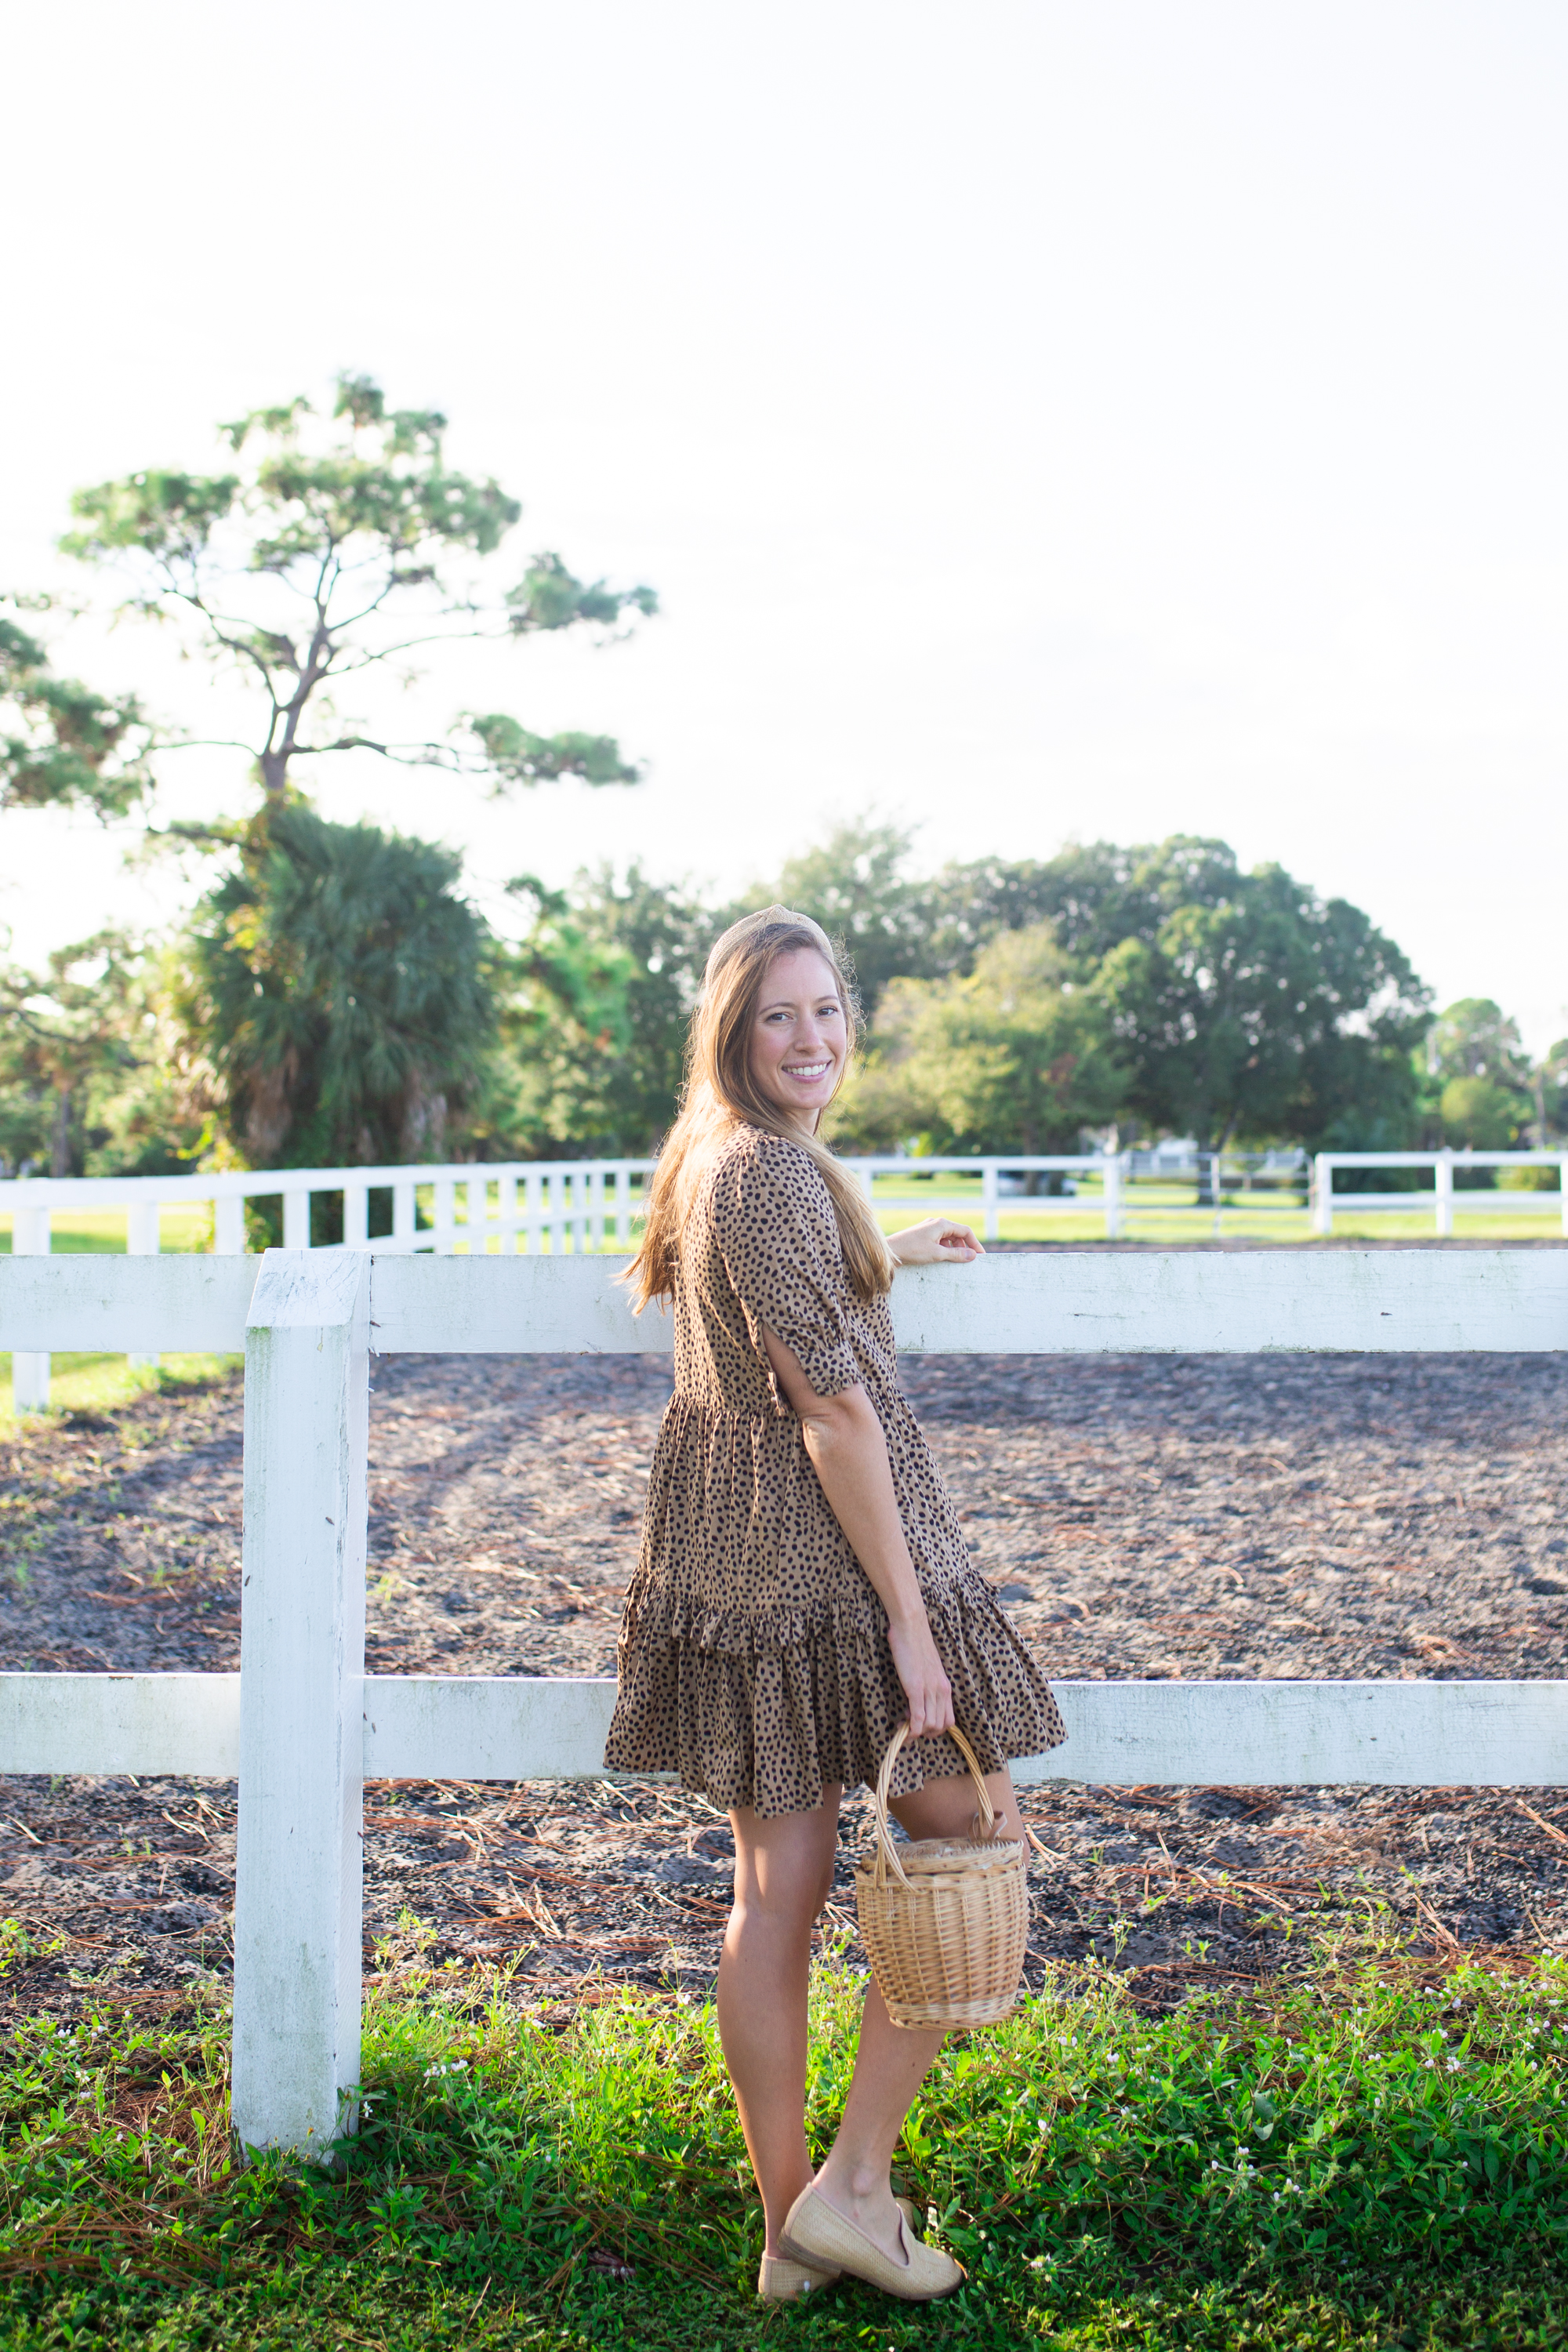 Leopard Print Dress / How to Style a Leopard Dress for Fall / Fall Outfit Idea / Casual Fall Outfit / Autumn Outfits / Leopard Print Dress Outfit Fall - Sunshine Style, A Florida Fashion and Lifestyle Blog by Katie